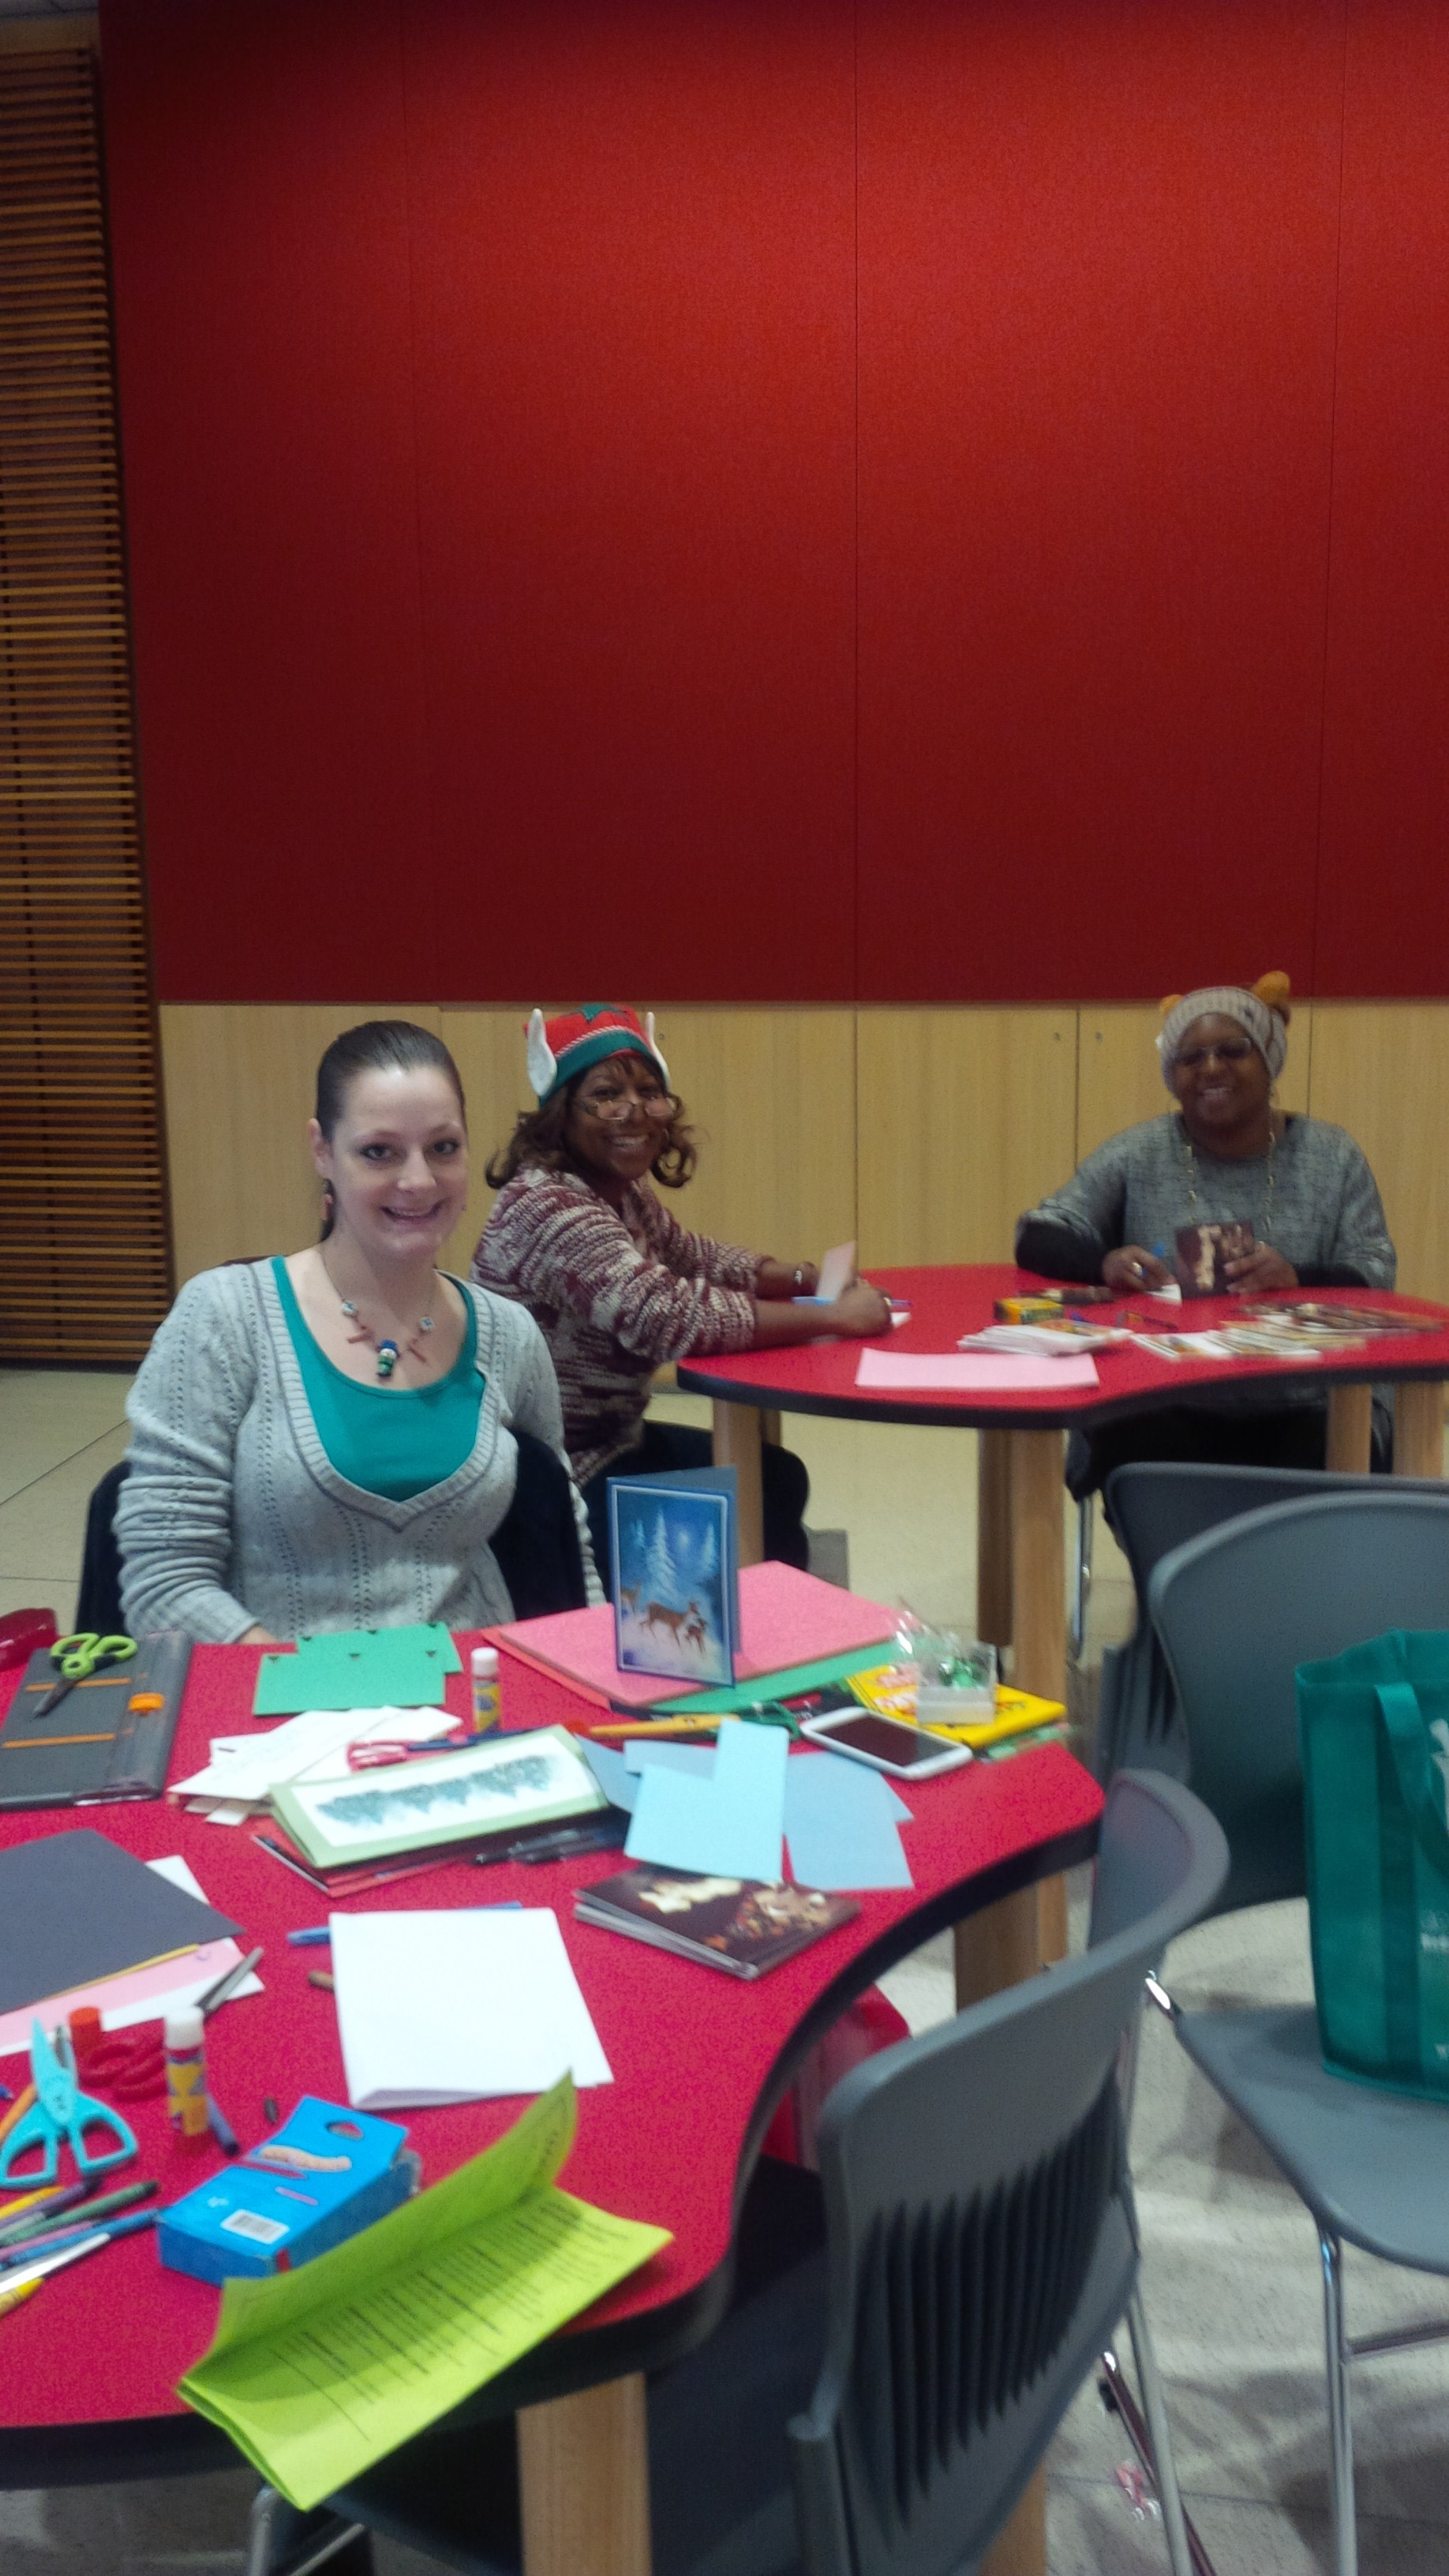 Card Making Party Attendees